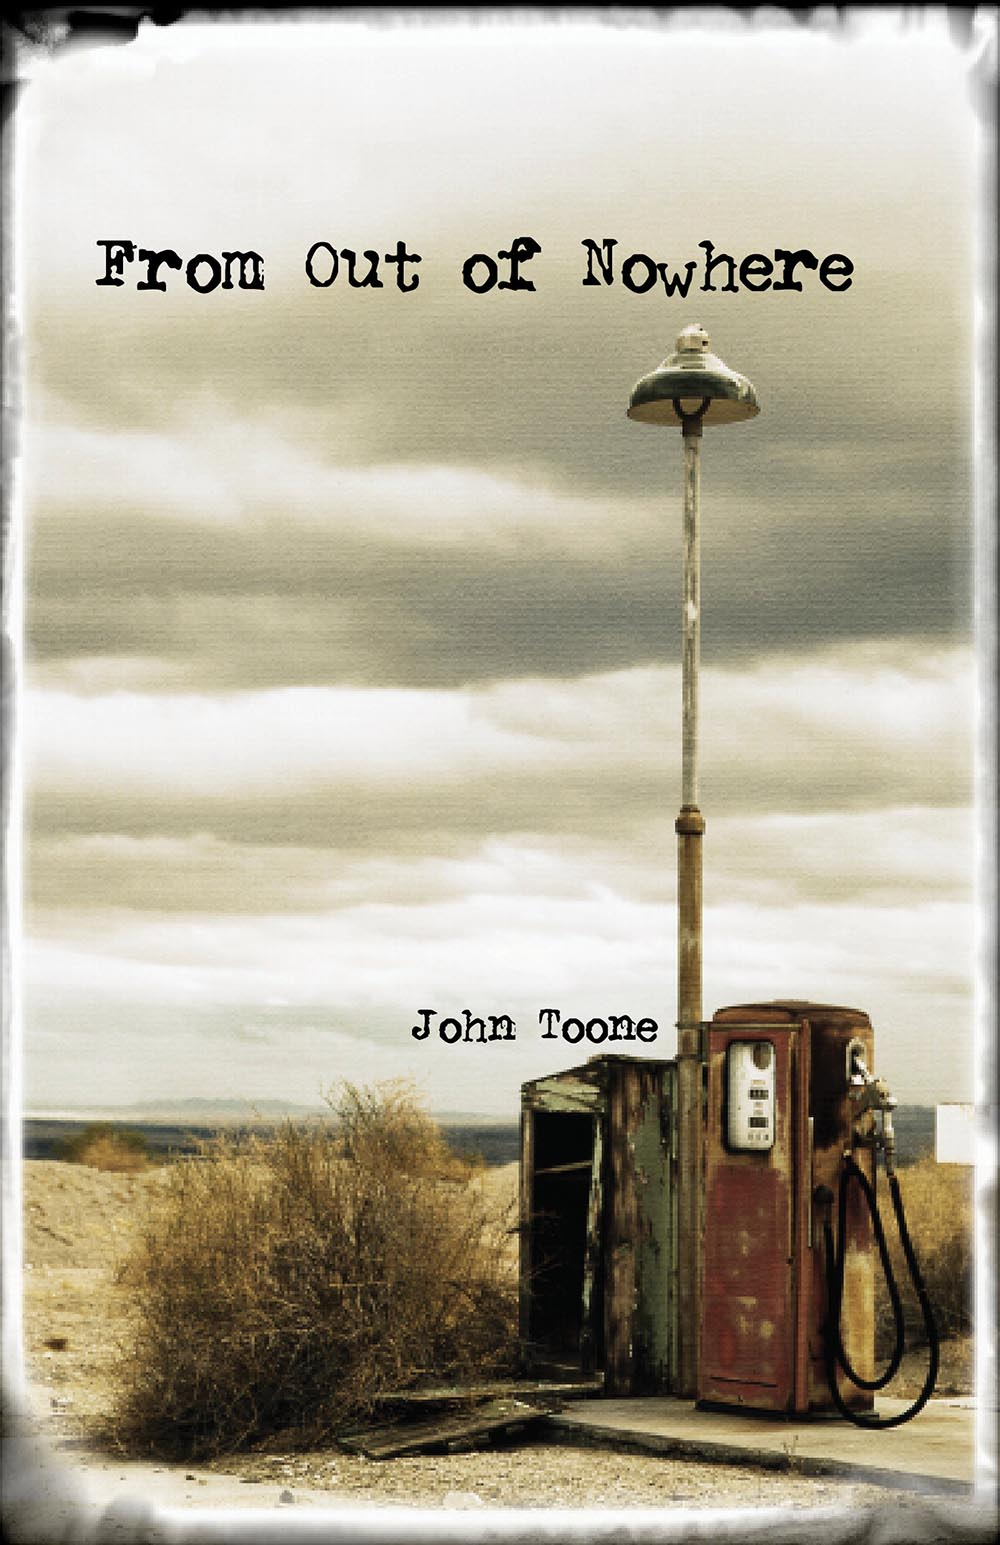 From Out of Nowhere by John Toone